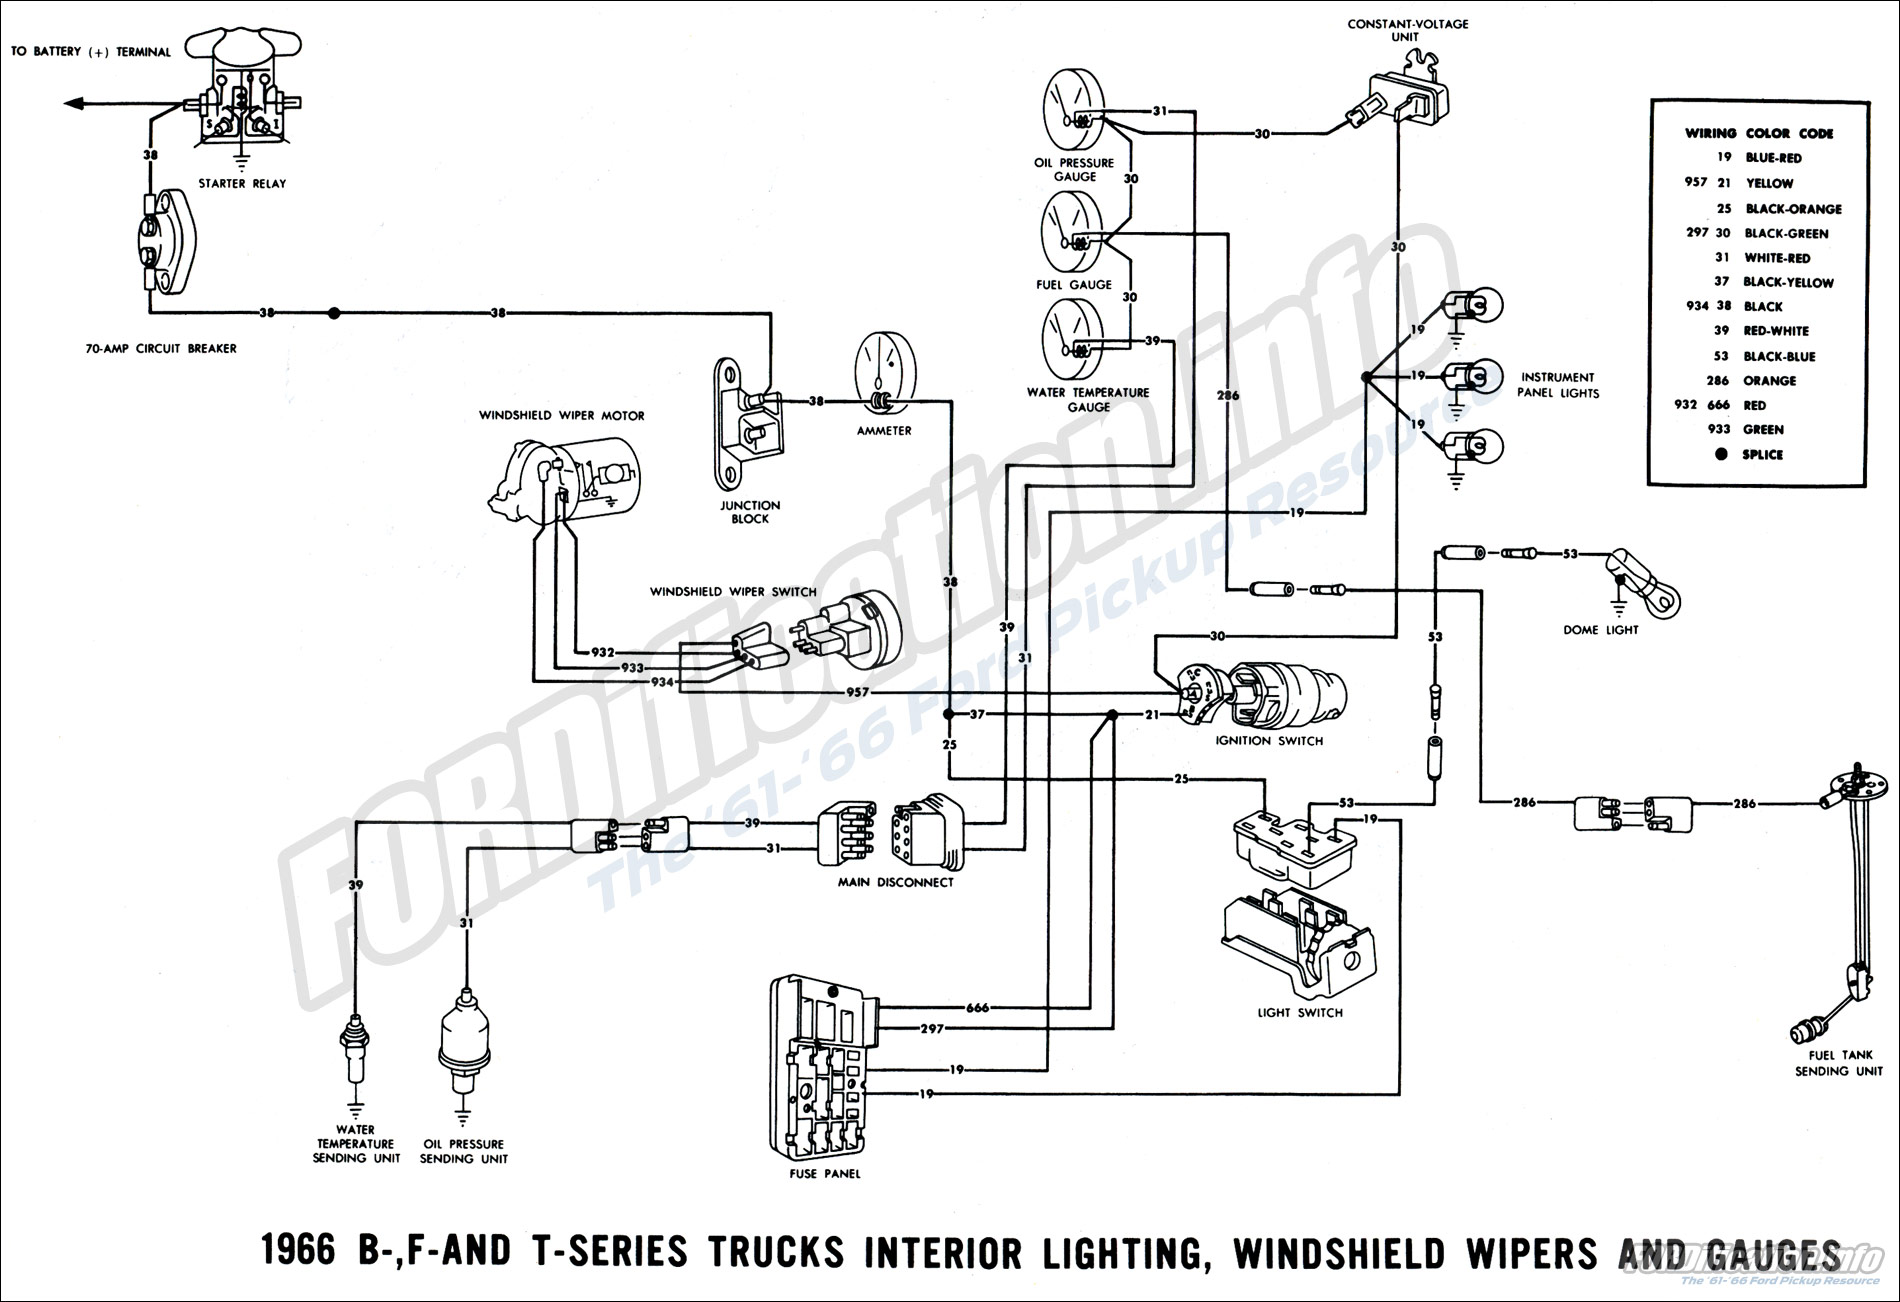 66 ford alt diagram 1966 ford truck wiring diagrams - fordification.info - the ... 66 ford wiring diagram #1